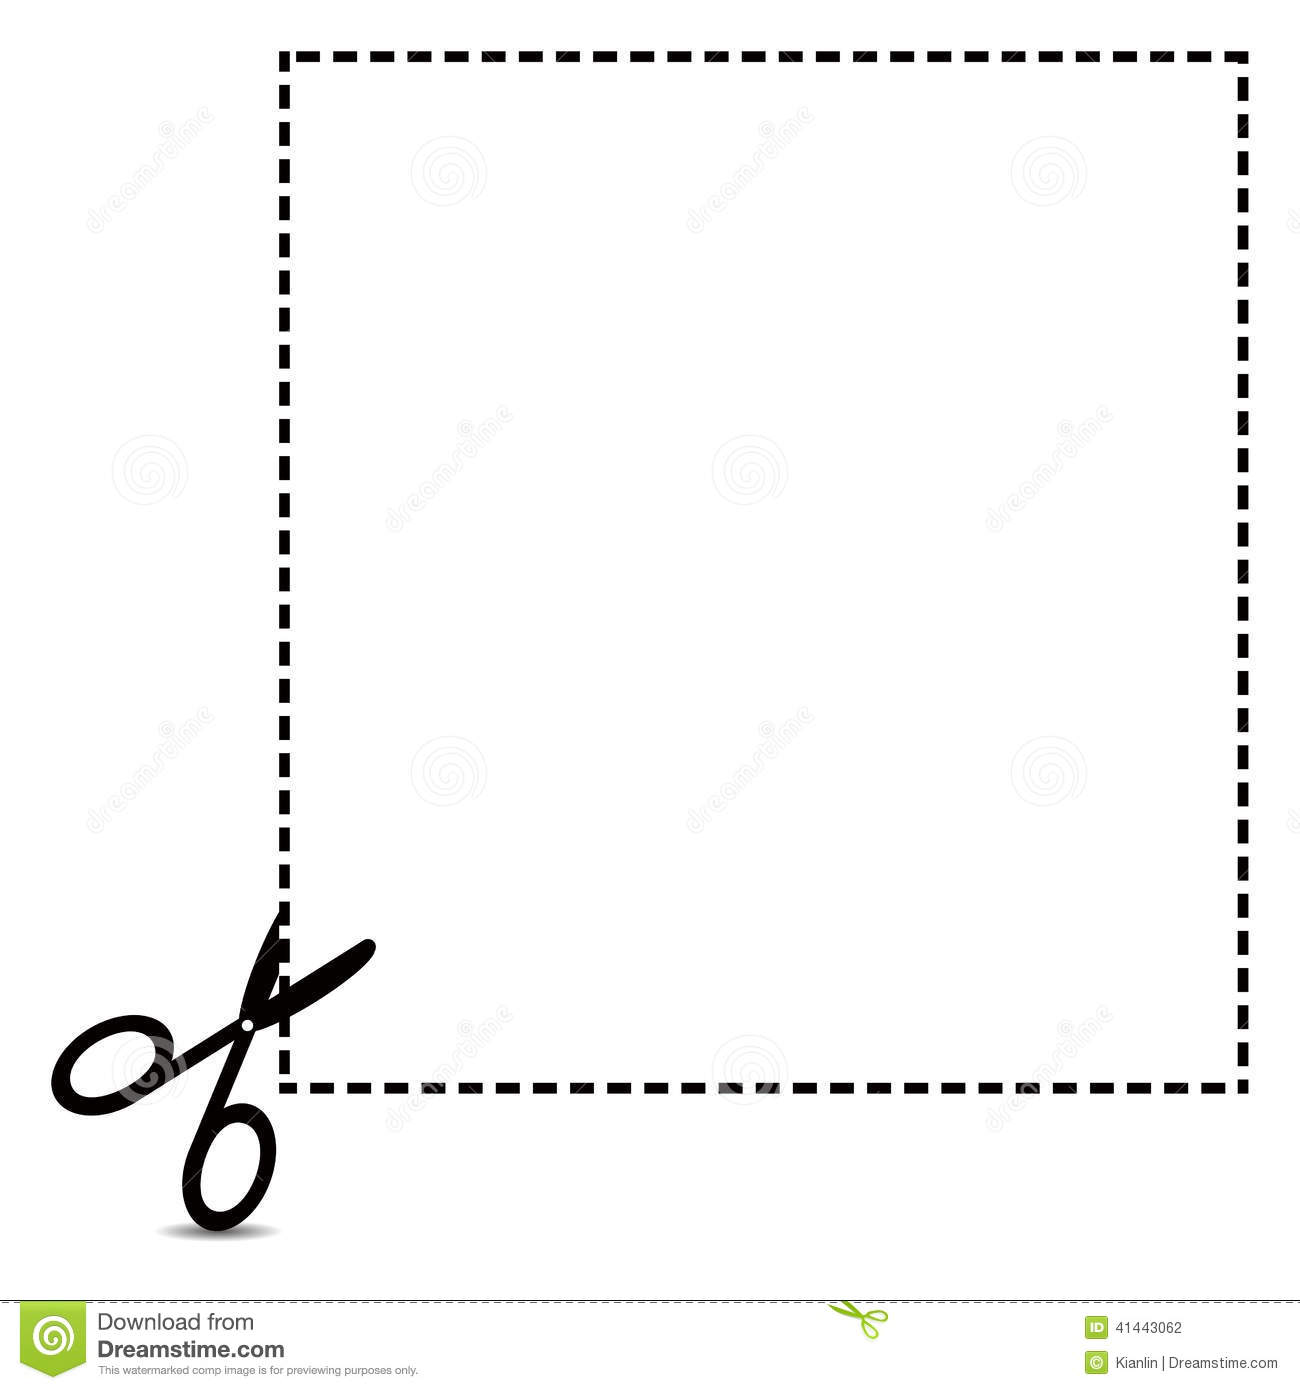 Coupon Clipping Outline Stock Vector